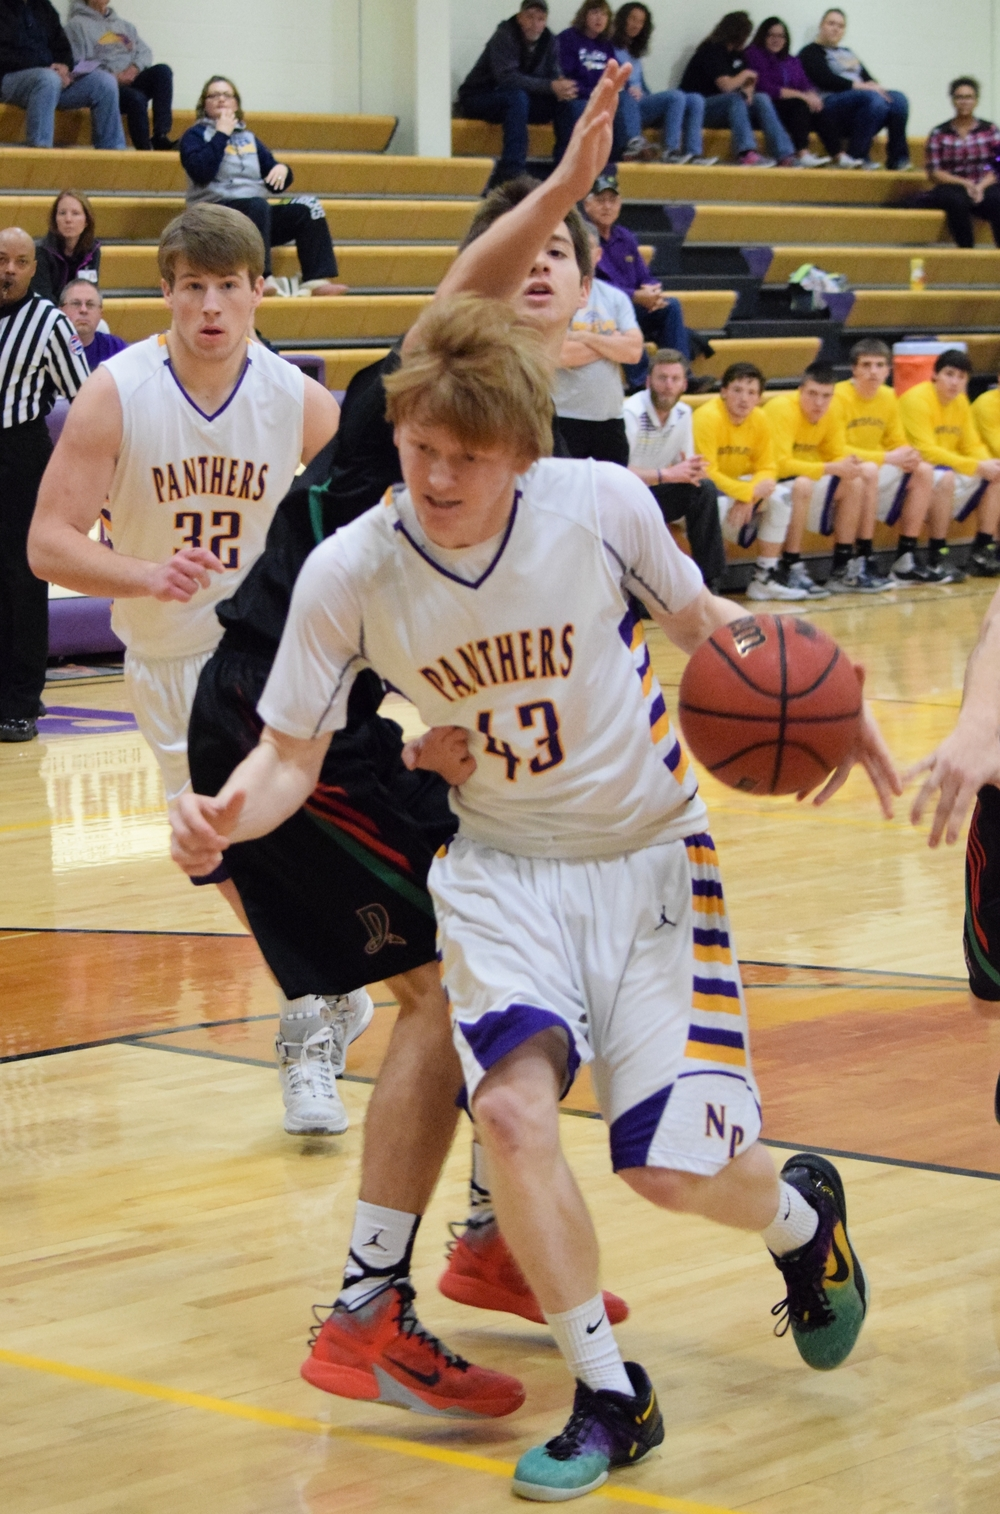 BRYCE MERENESS/Citizen file photo North Platte senior guard Andrew Roberts drives to the basket against Mid-Buchanan in the championship game of the North Platte Invitational. The Panthers won their home tournament for the first time since 2007.